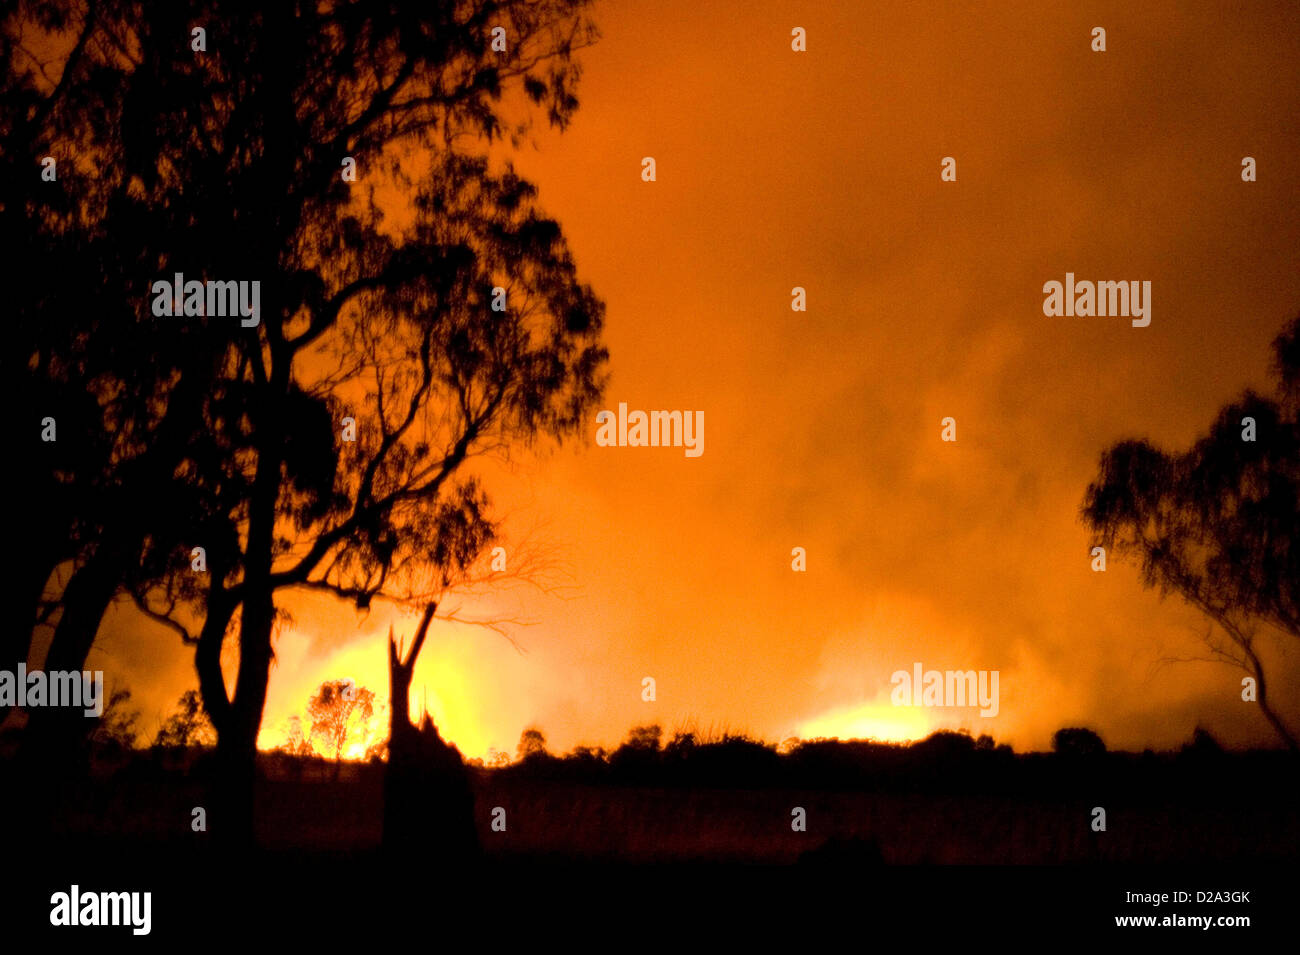 Heyfield, Victoria, Australia. 18th January 2013. Bushfires burn out of control, tearing through Victoria nearly - Stock Image